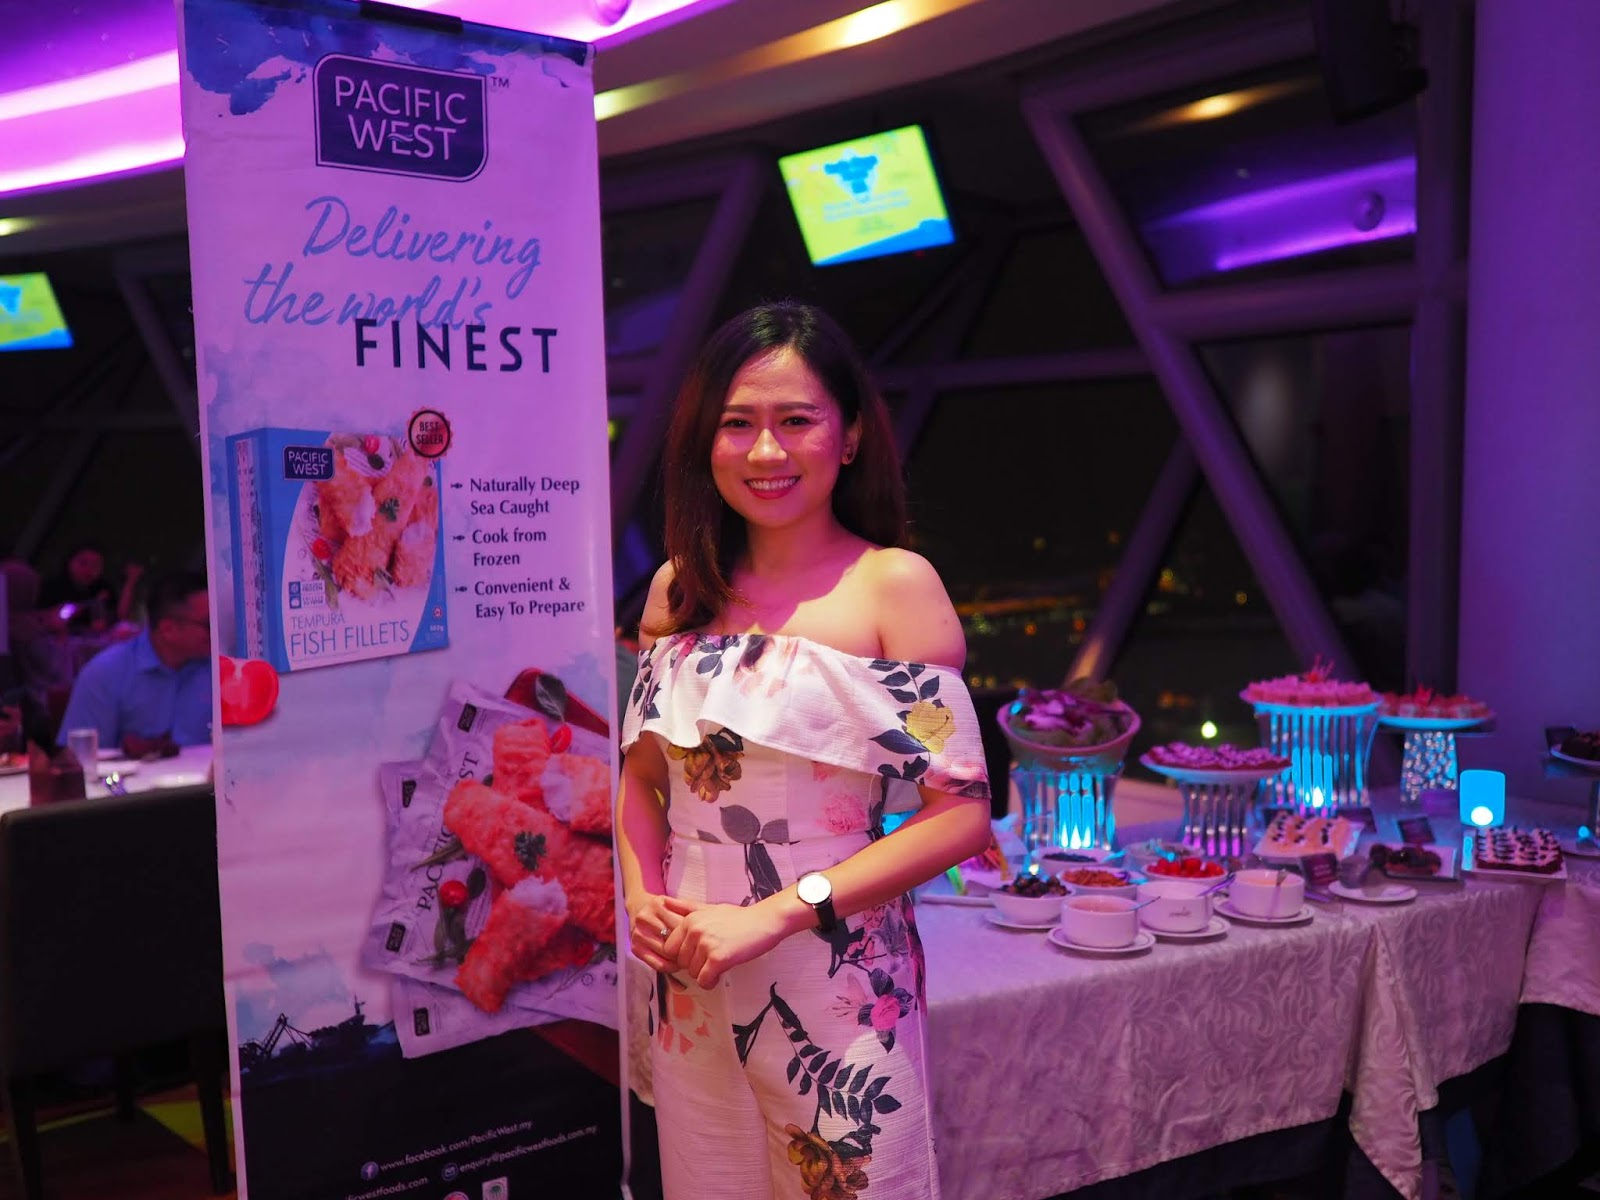 [Event] Ceria Raya Feast with Pacific Place @ Atmosphere 360, KL Tower.